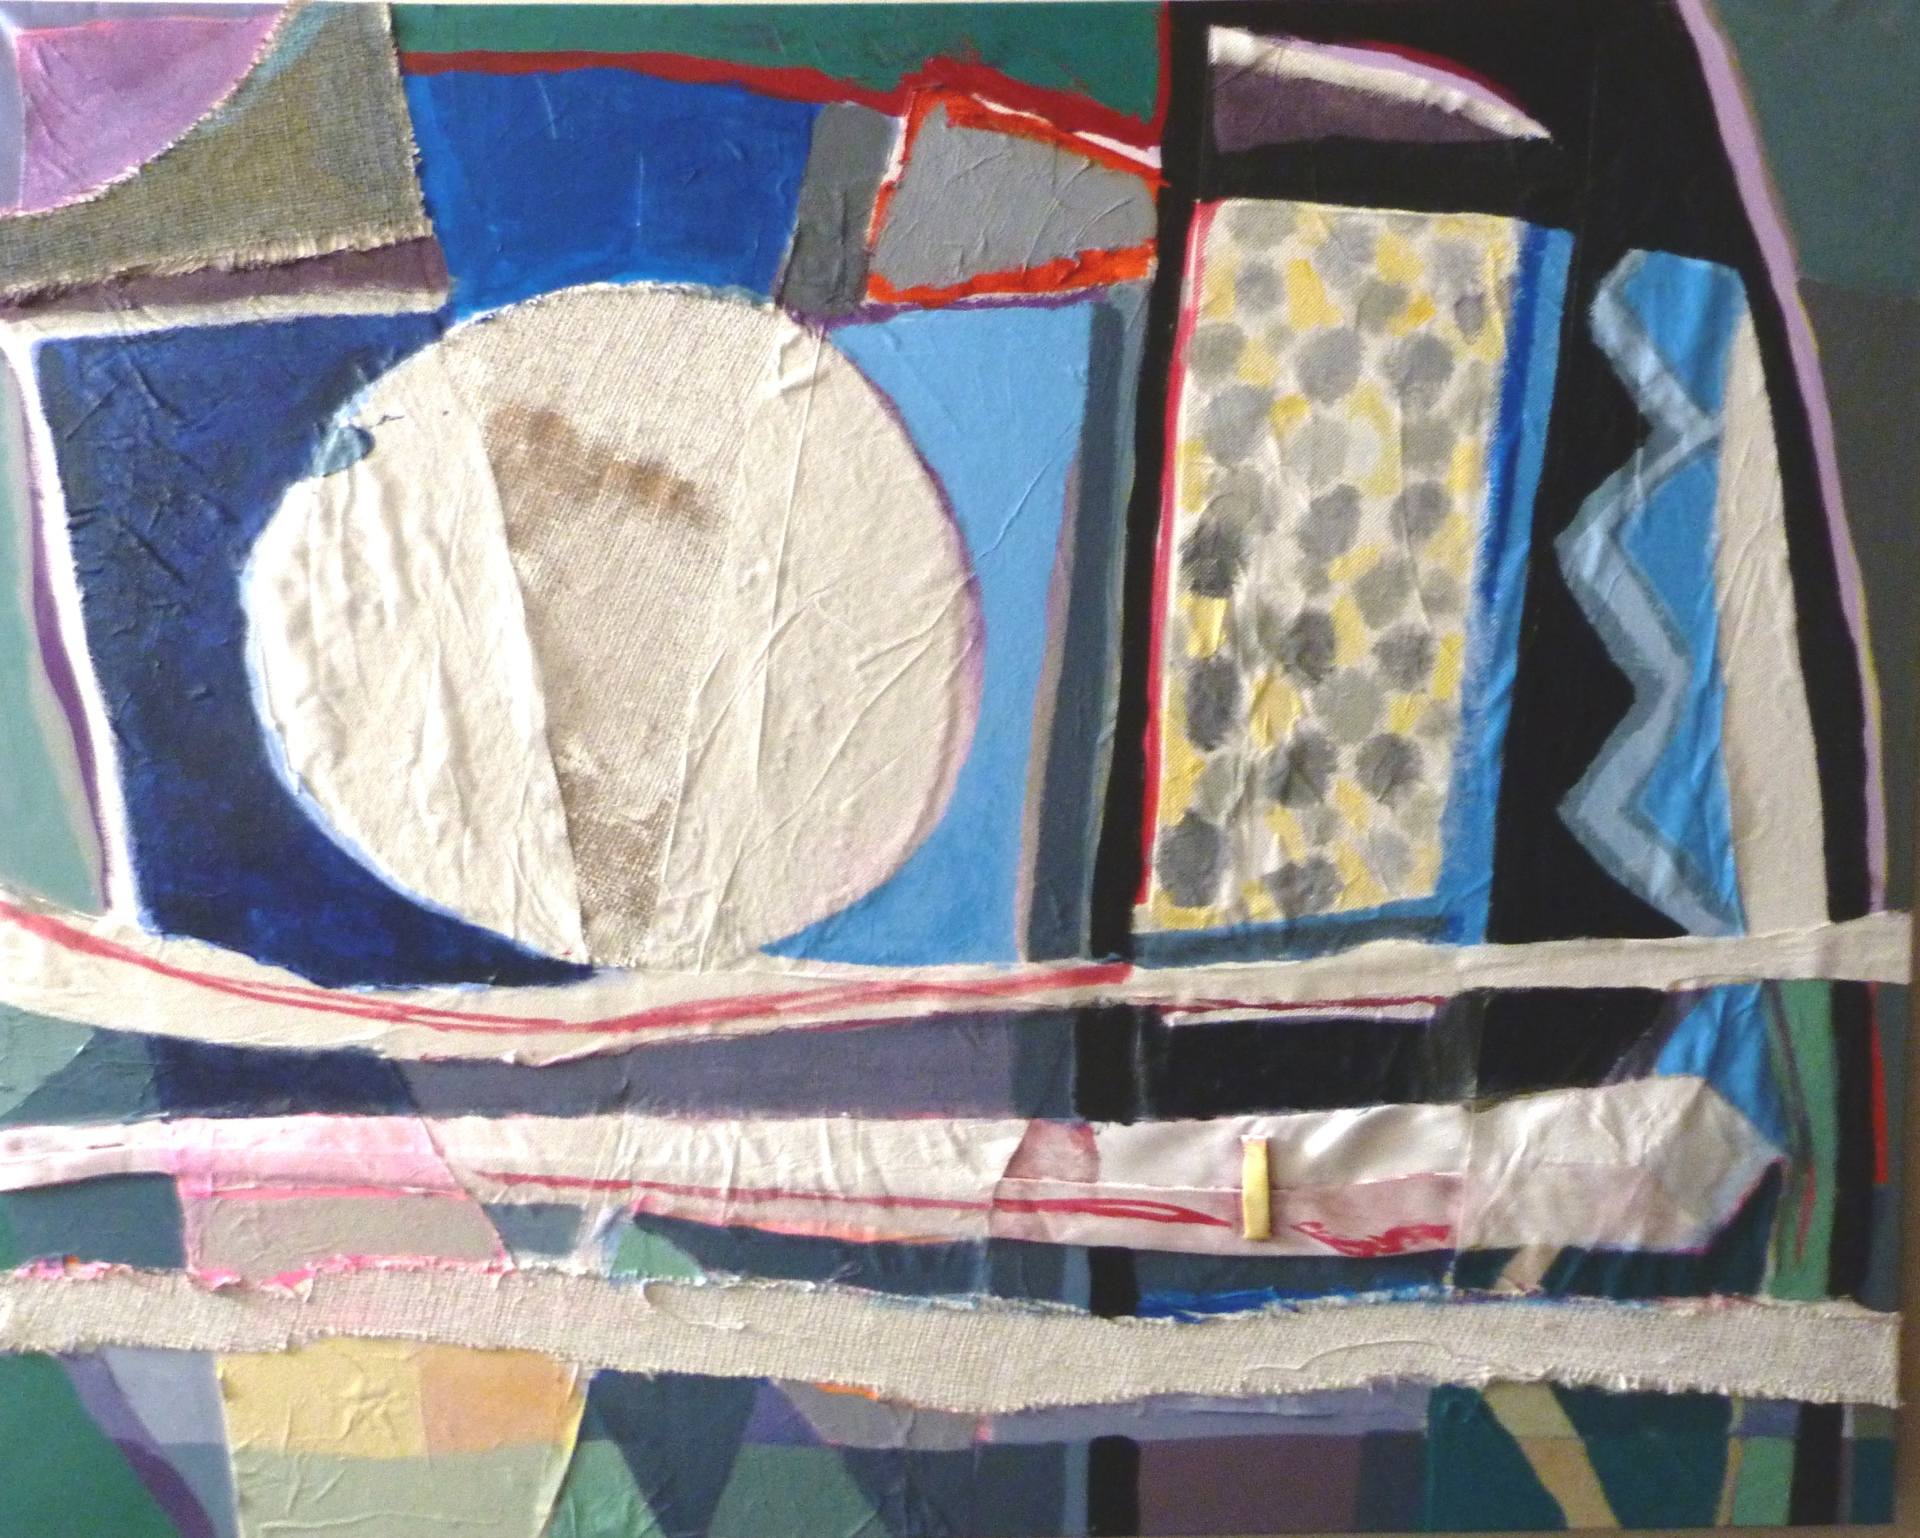 THE-MOON-AND-THE-TIE.-Mixed-Media-on-Canvas.-100-x-80-x-4cm.-2014-